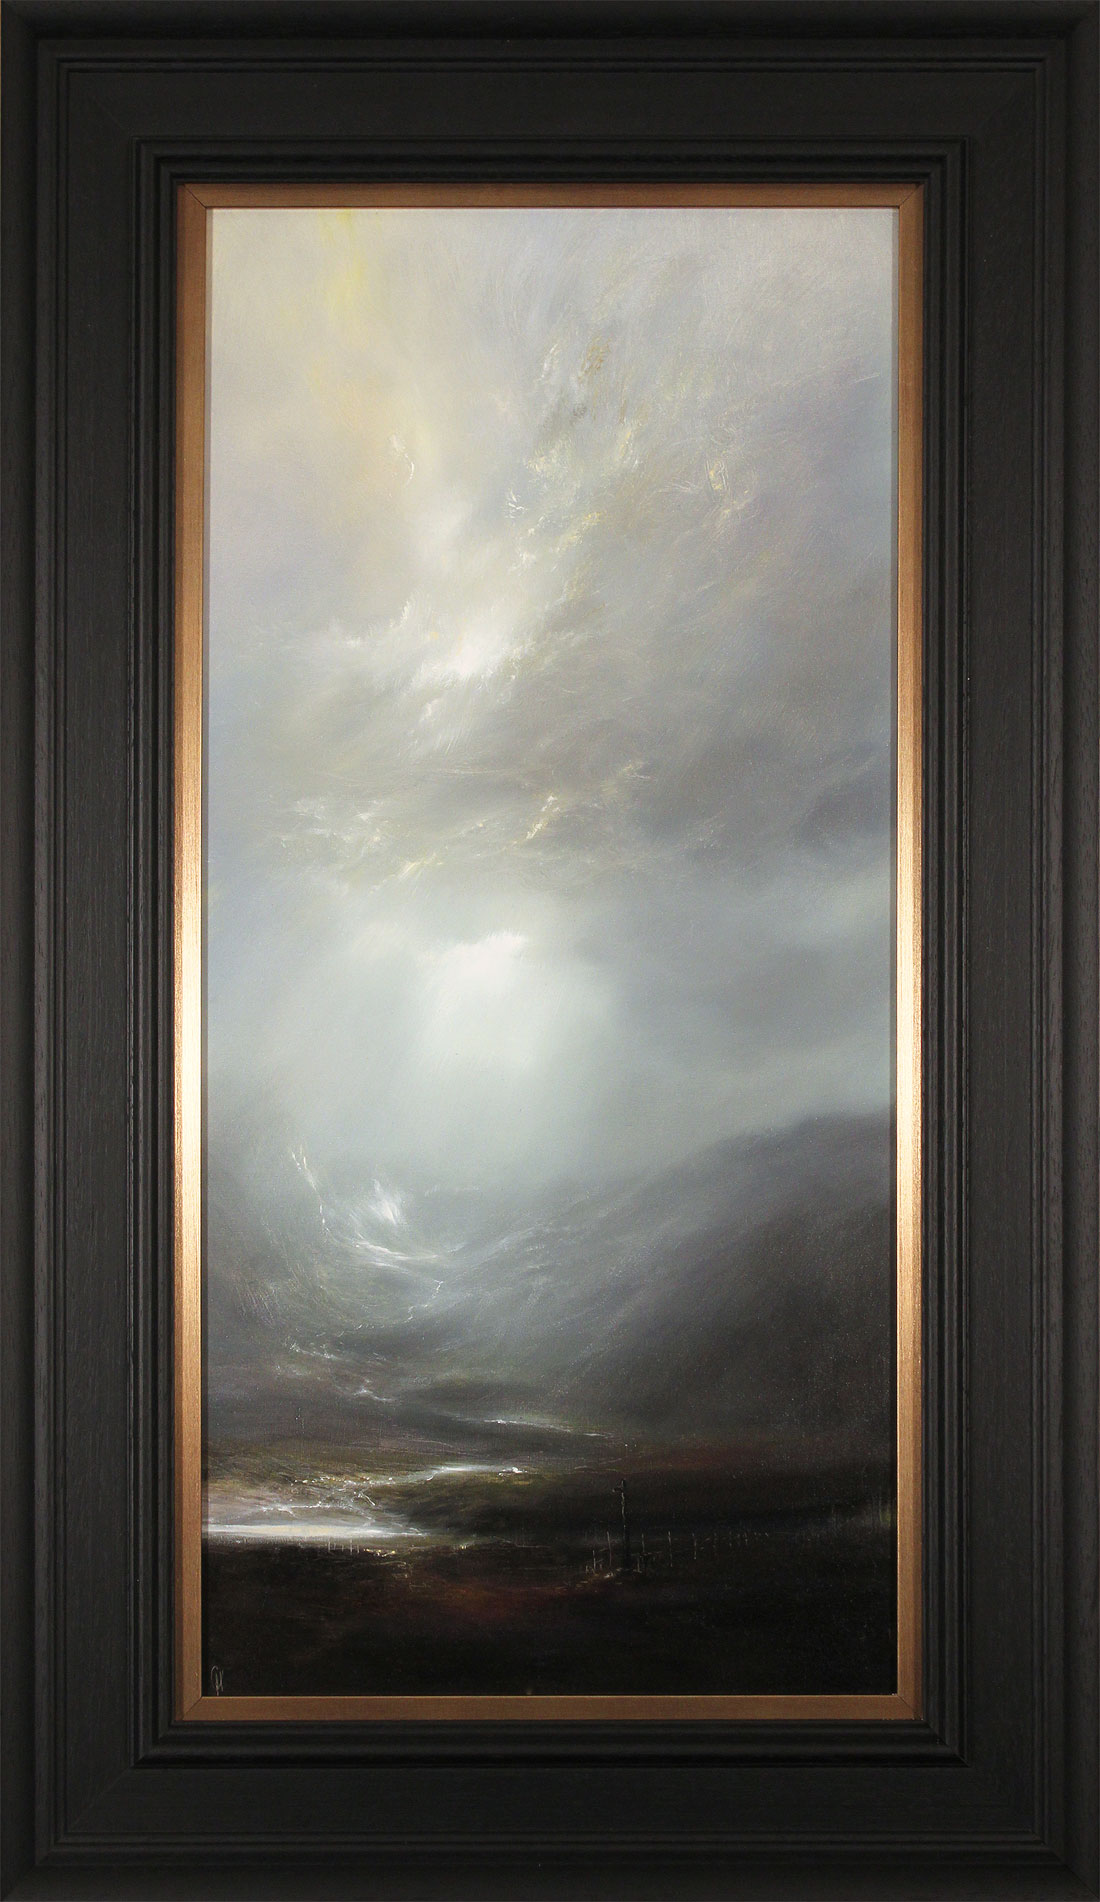 Clare Haley, Original oil painting on panel, Misty Morning Air. Click to enlarge